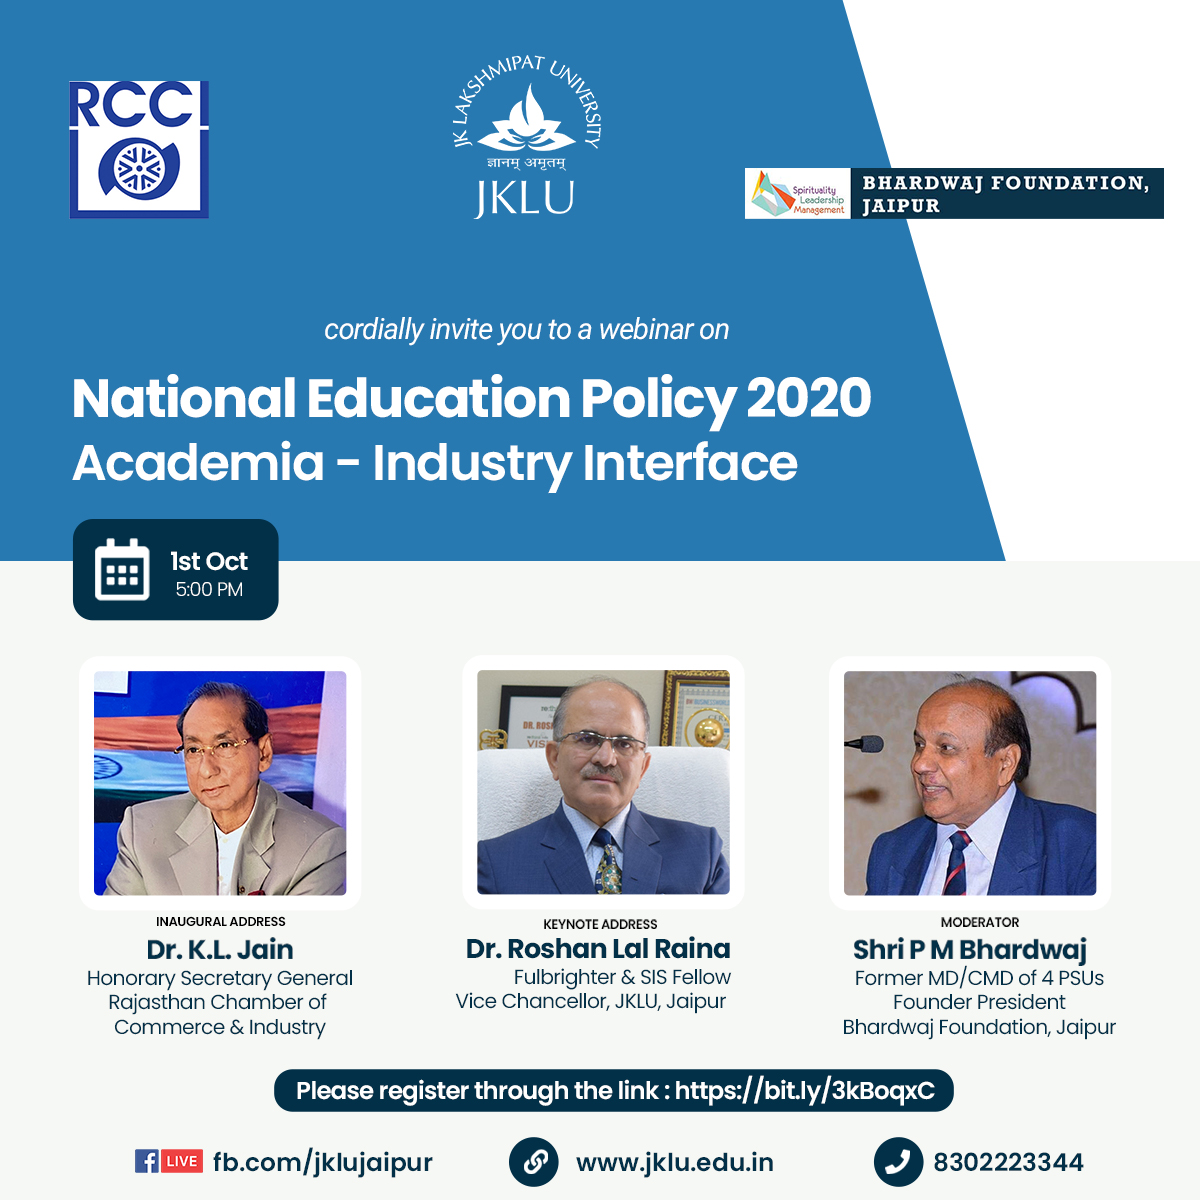 "#JKLU in association with Rajasthan Chamber of Commerce & Industry, and Bhardwaj Foundation, #Jaipur is organizing a webinar on ""National Education Policy 2020:  Academia-Industry Interface."" #NEP2020   Click on the link to register in advance: https://t.co/3RC0r9eDVk #education https://t.co/IskR4ZN0Mo"